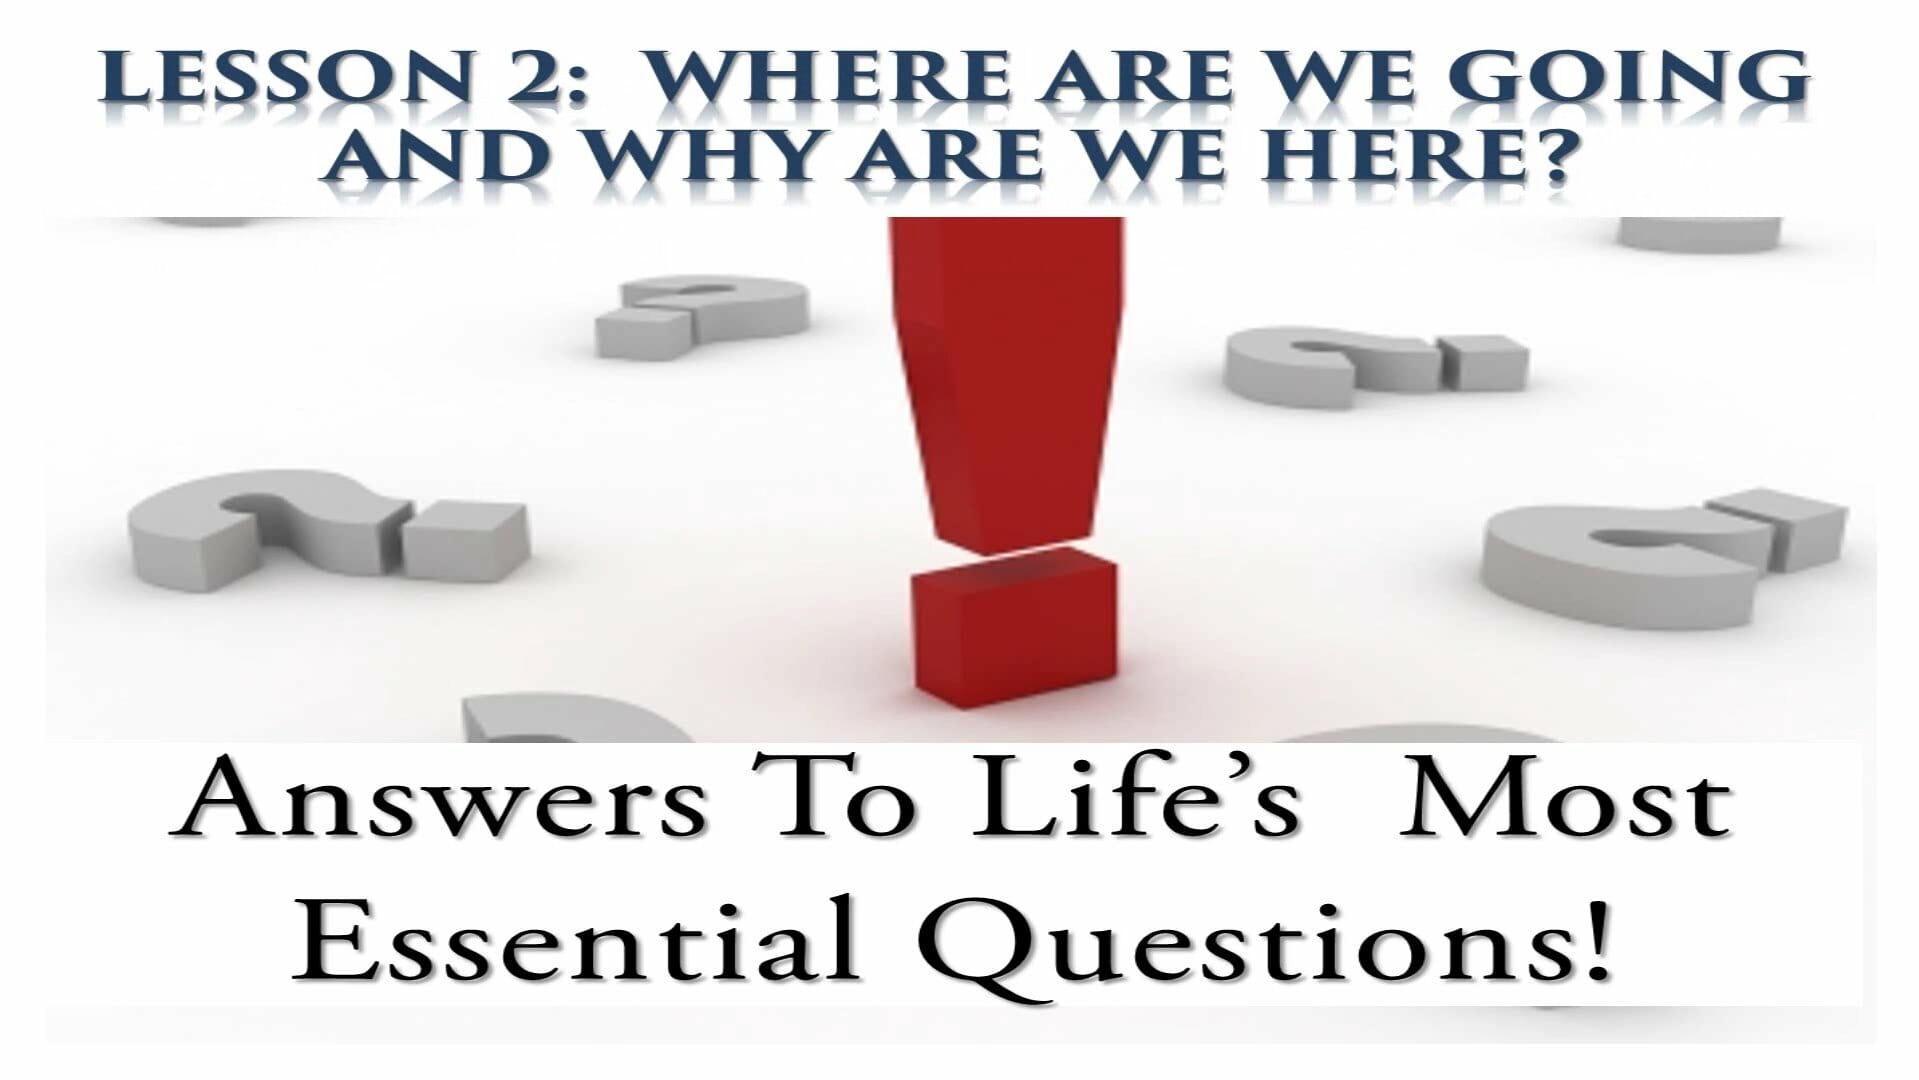 Answers To Life's Most Essential Questions (Lesson 2:  Where Are We Going And Why Are We Here?)